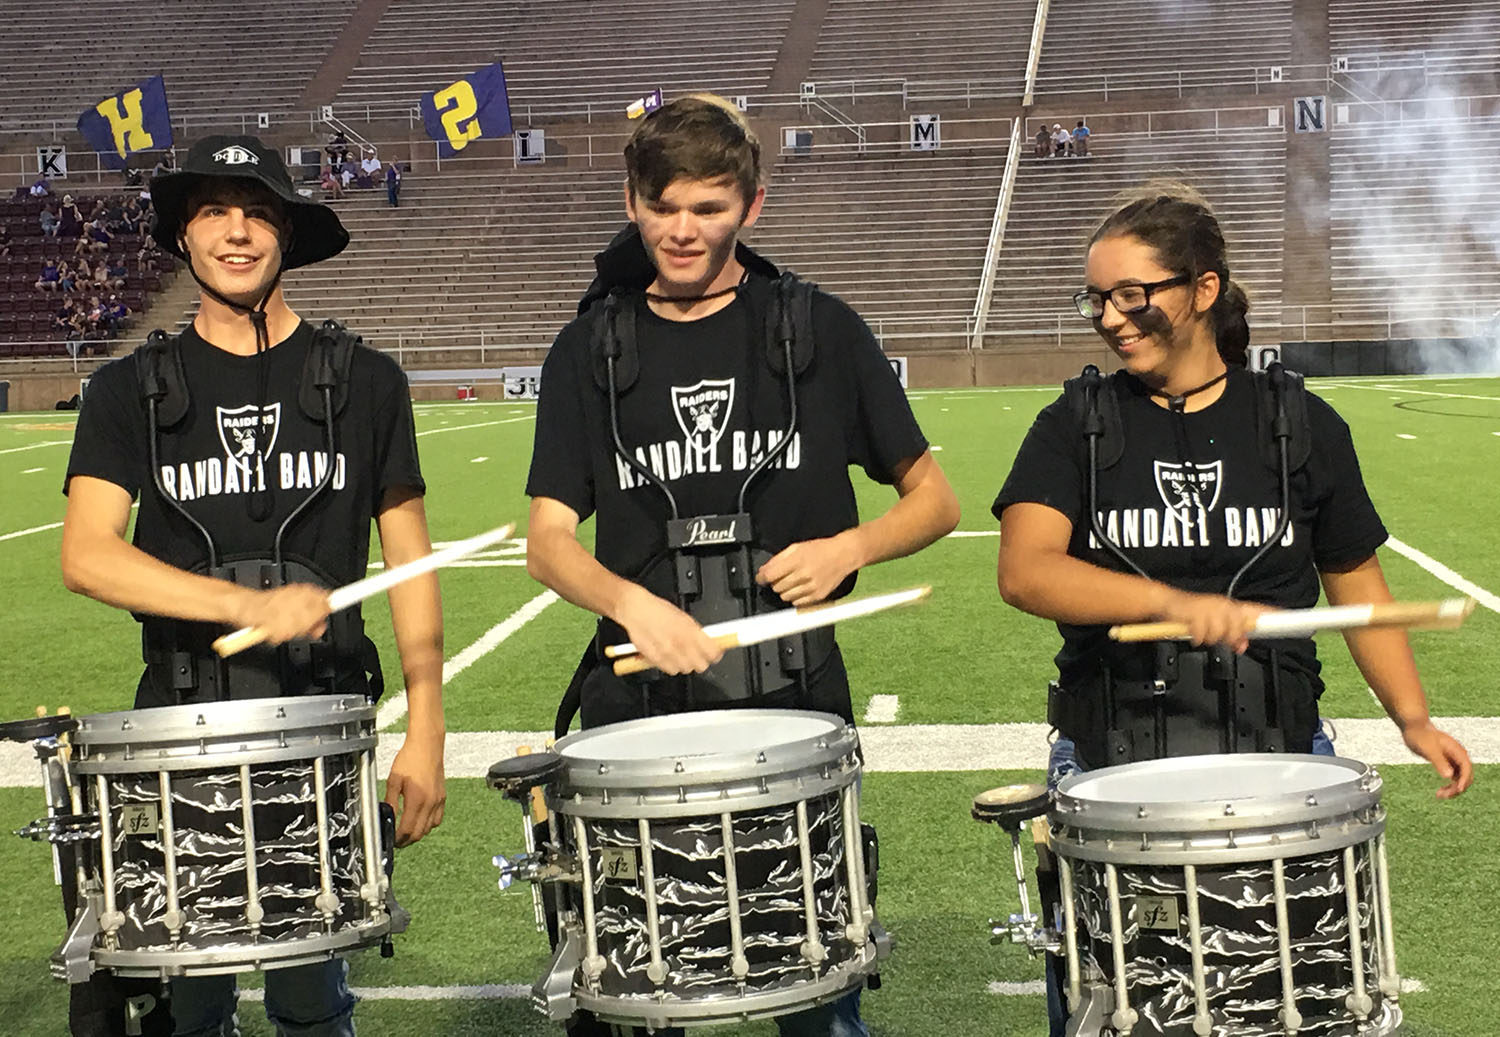 Drumline members play in front of the student section during a home game at Kimbrough Stadium.